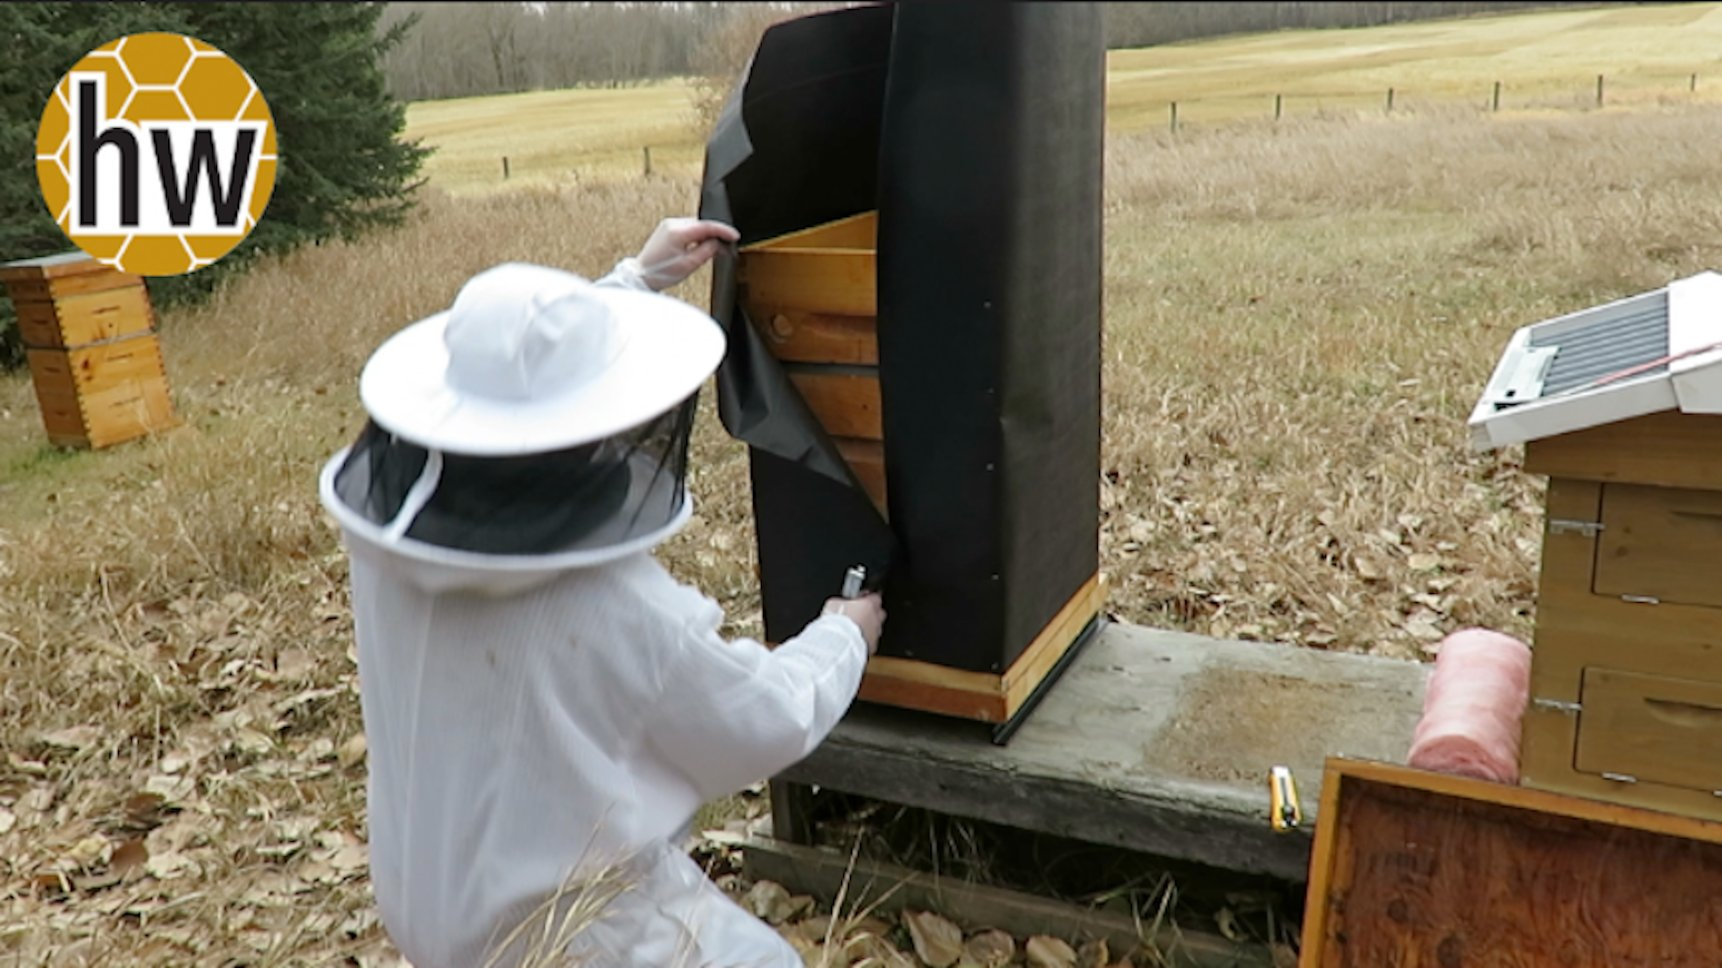 Overwintering: Which way do you wrap or insulate your hives?